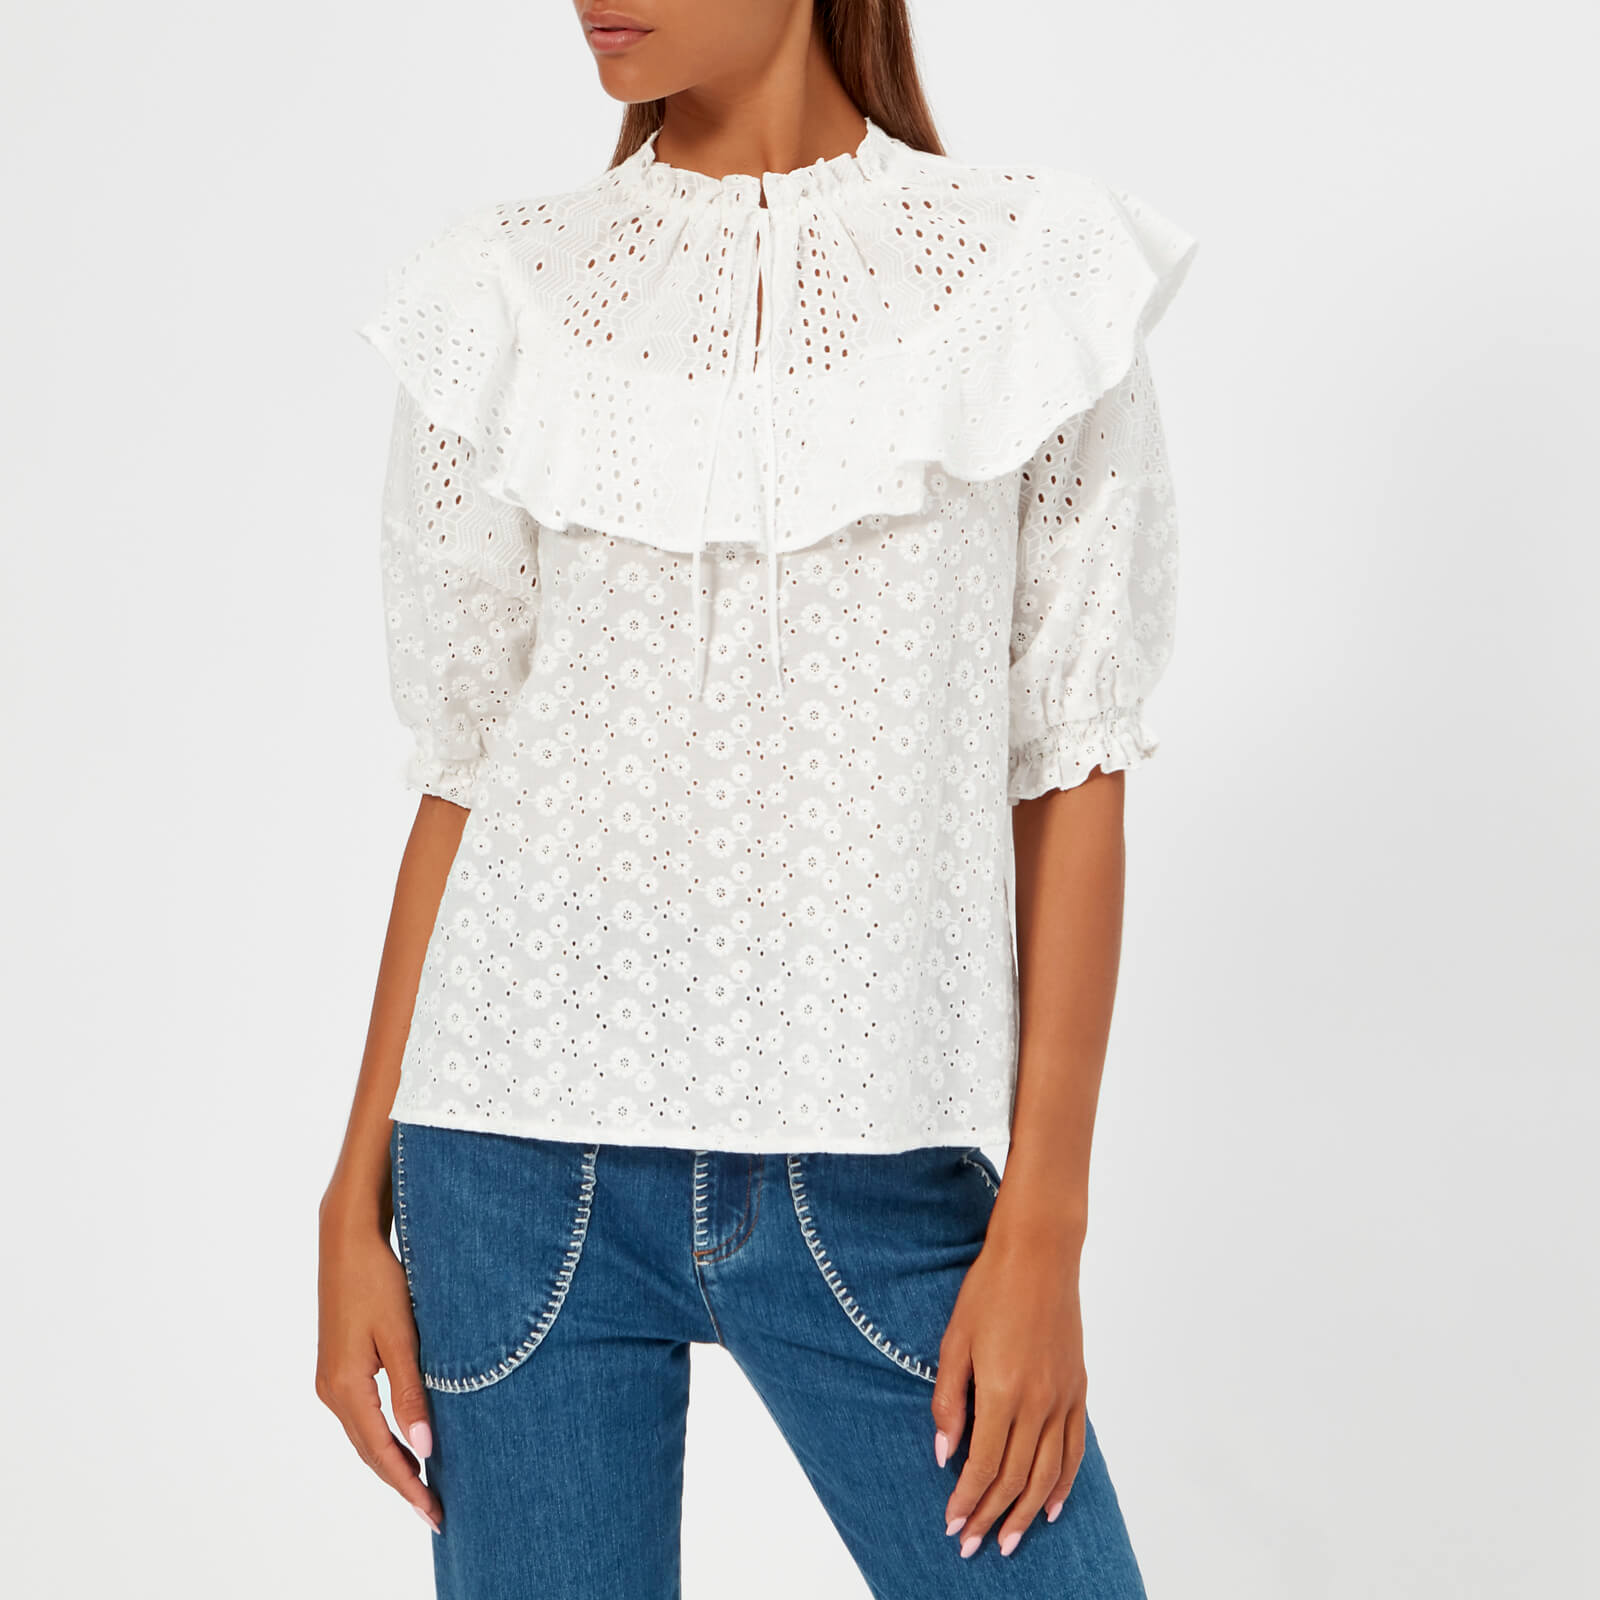 96517c09cd See By Chloé Women's Cotton Ruffle Blouse - White